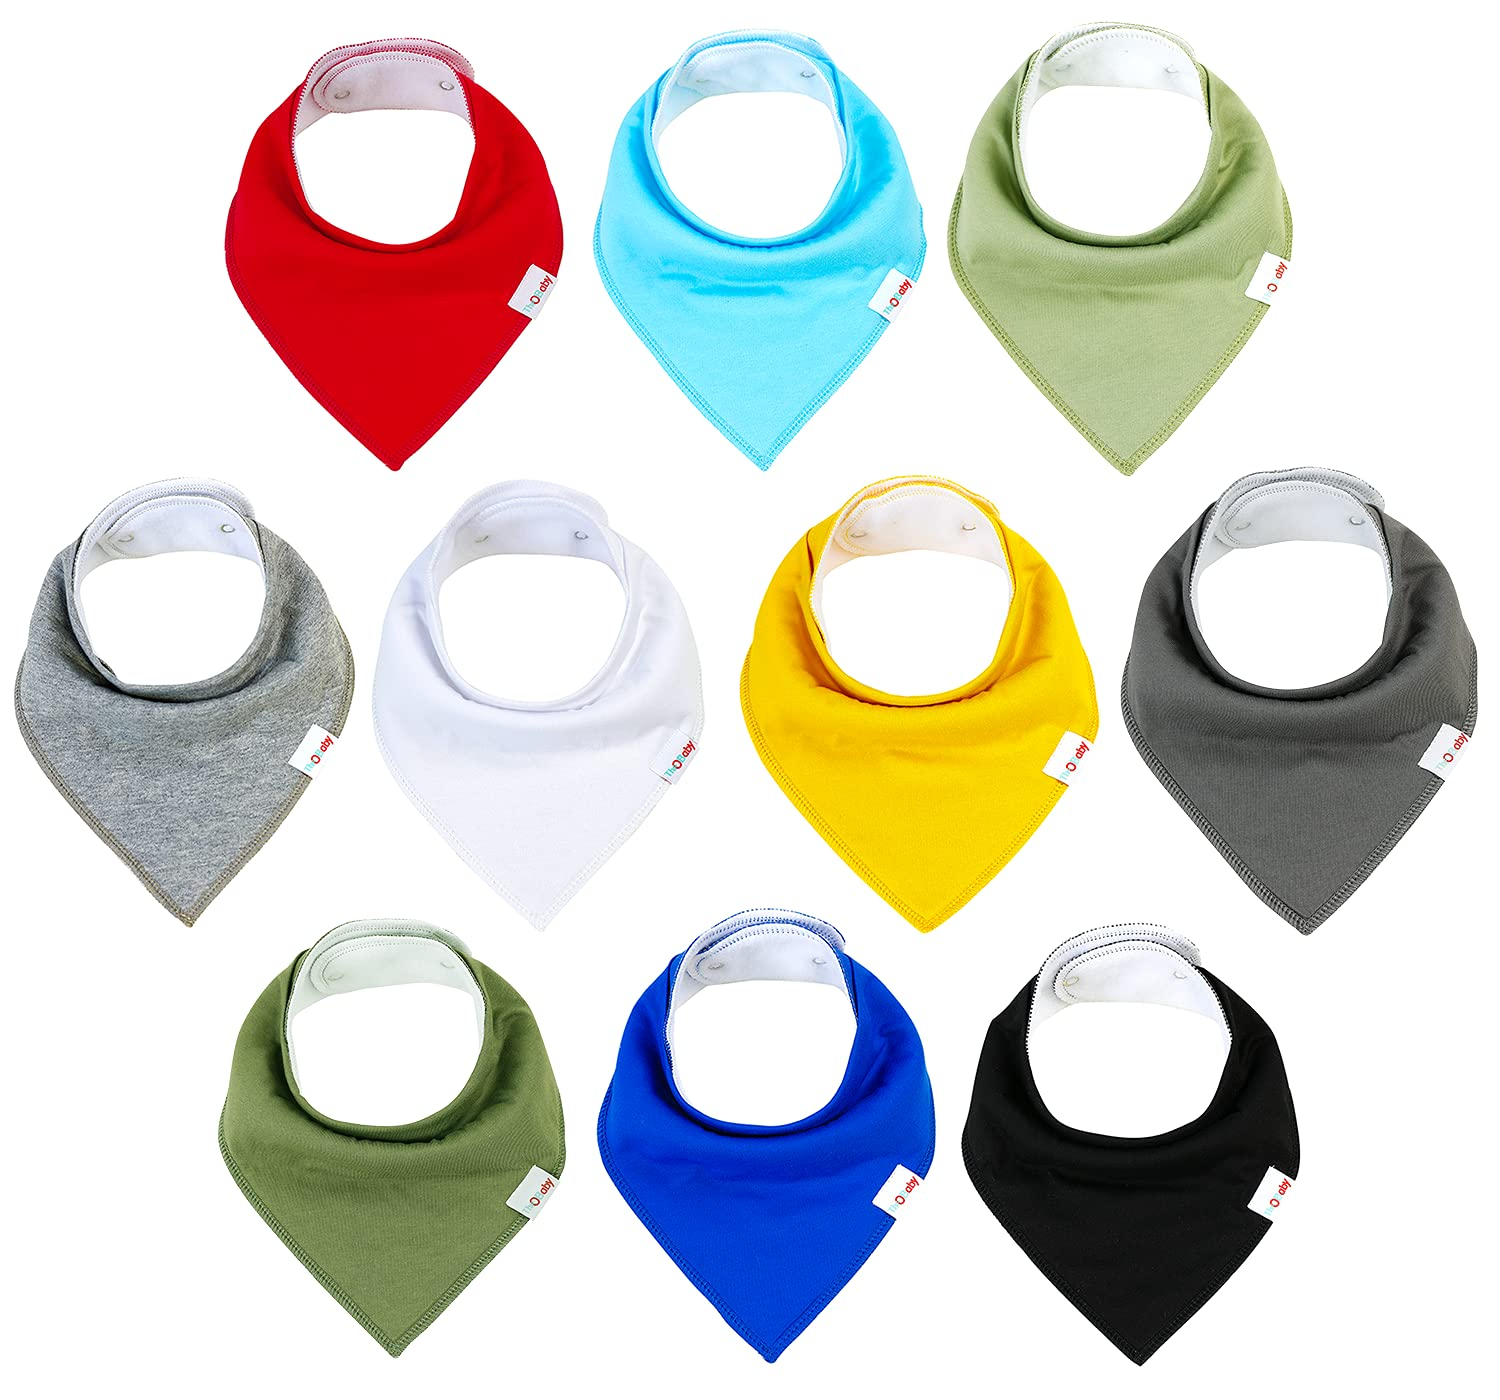 TheOBaby Baby Bandana Drool Bibs for Boys and Girls with Organic Cotton and Polyester - 10 Pack Soft Baby Teething Bibs with Super Absorbent Fabric (Solid Color)